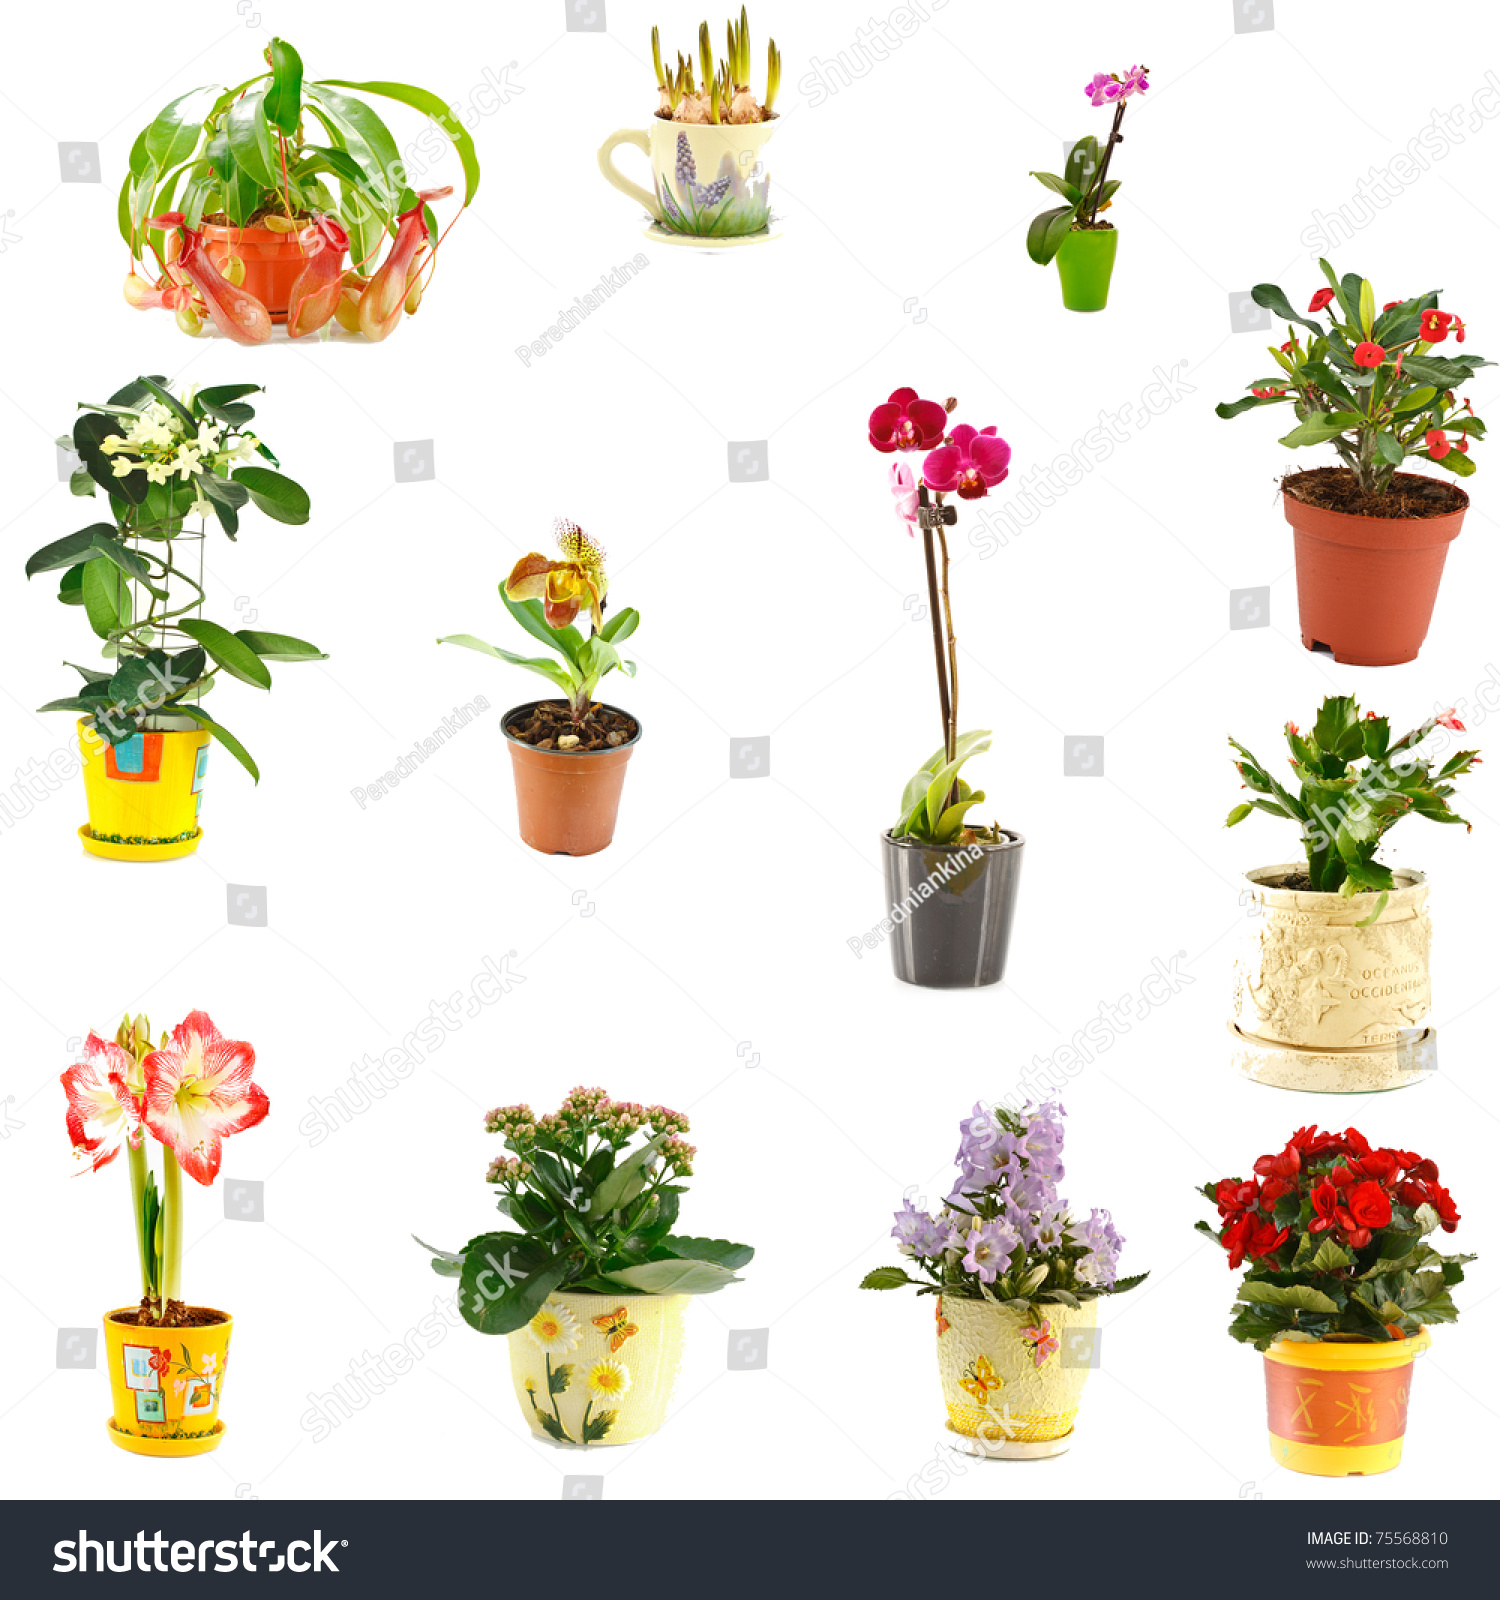 Collage of indoor plants of different varieties stock photo 75568810 shutterstock - Indoor plant varieties ...